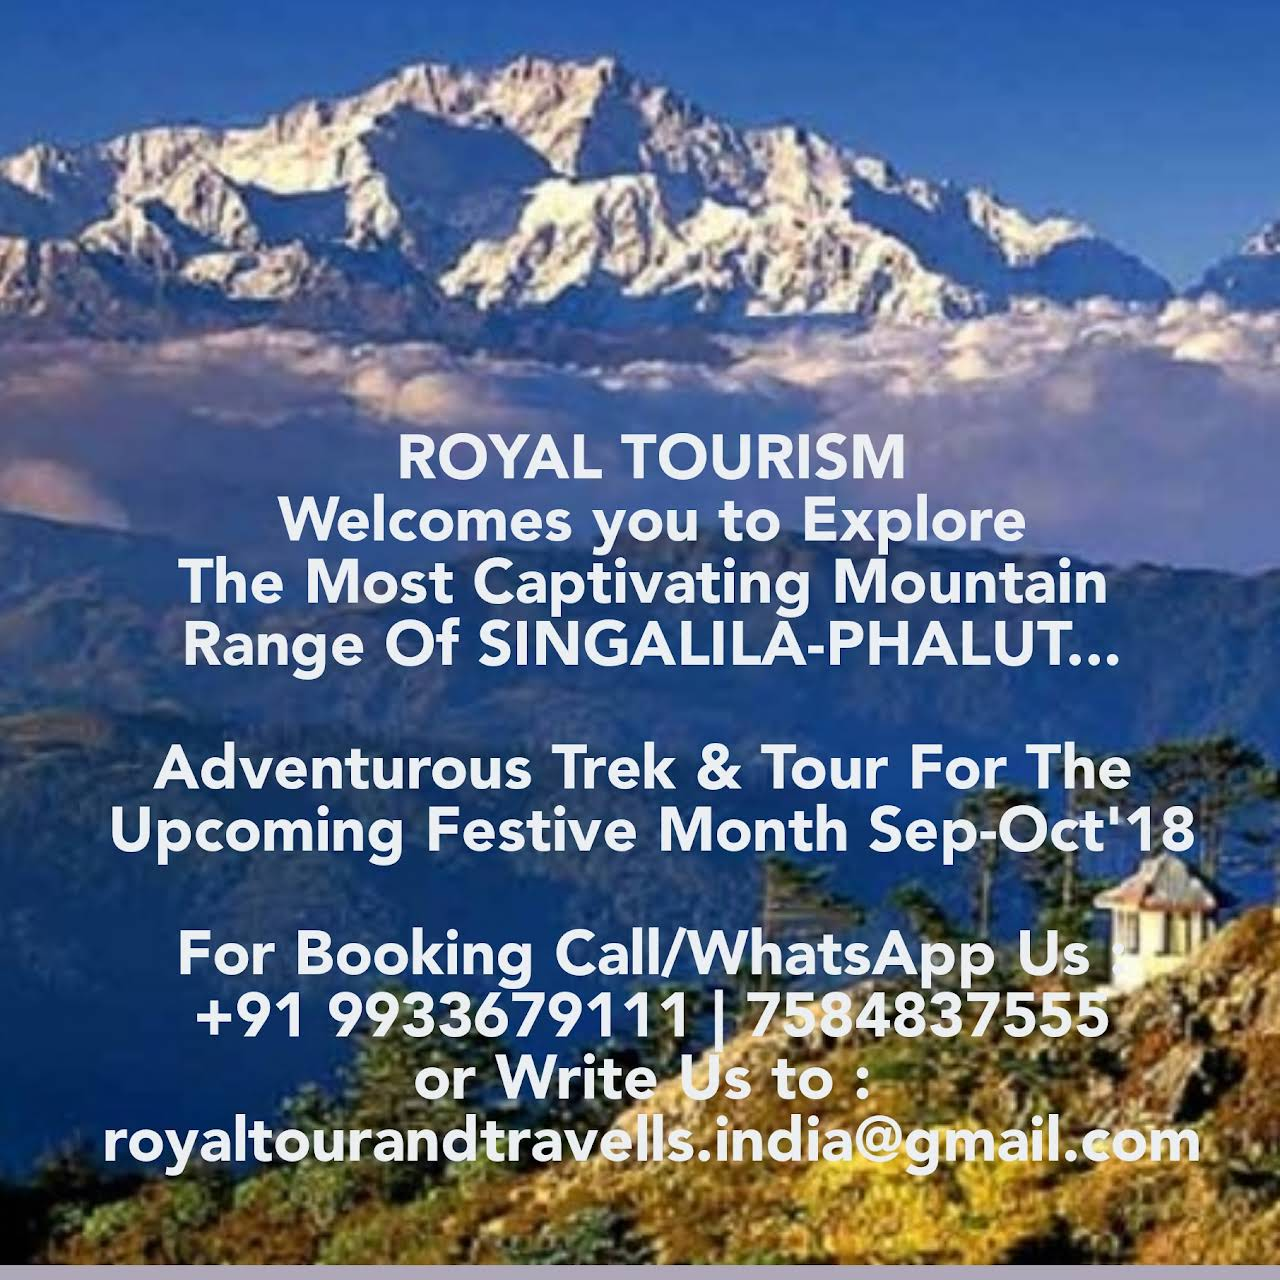 ROYAL INDIA TOURISM & ADVENTURE - Travel Agency in Bagdogra